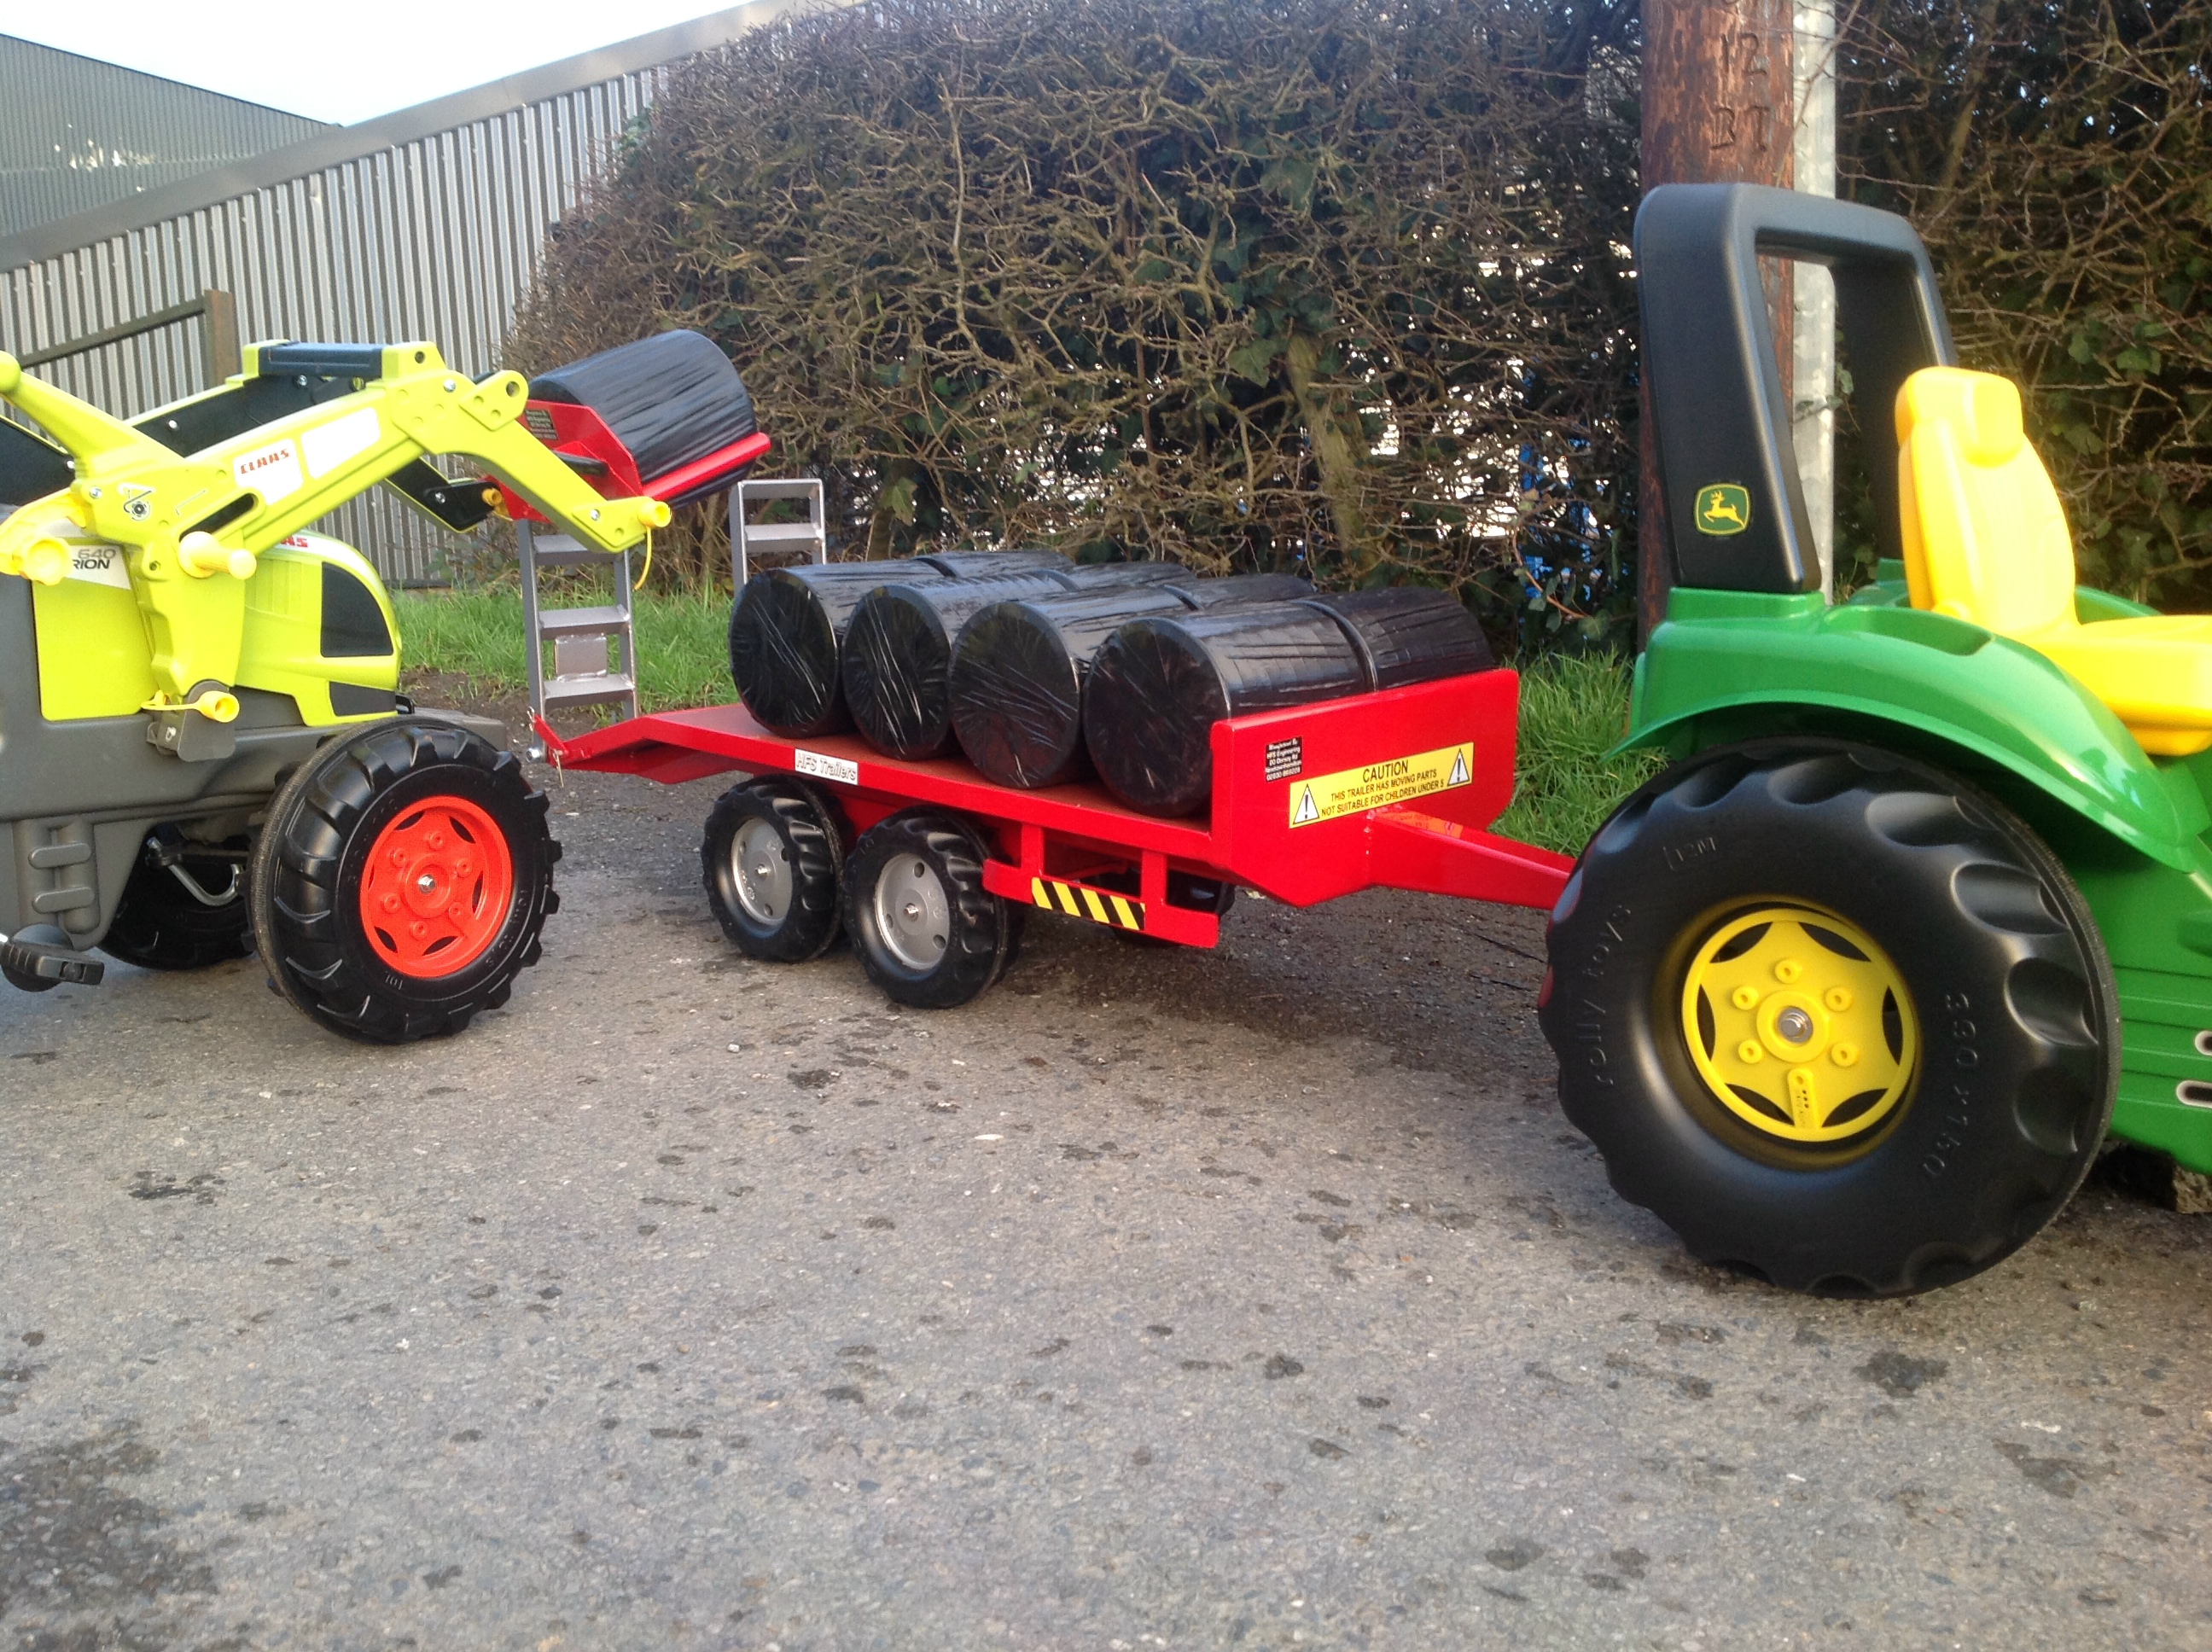 Metal Pedal Tractor Loader : Metal toy riding tractors wow